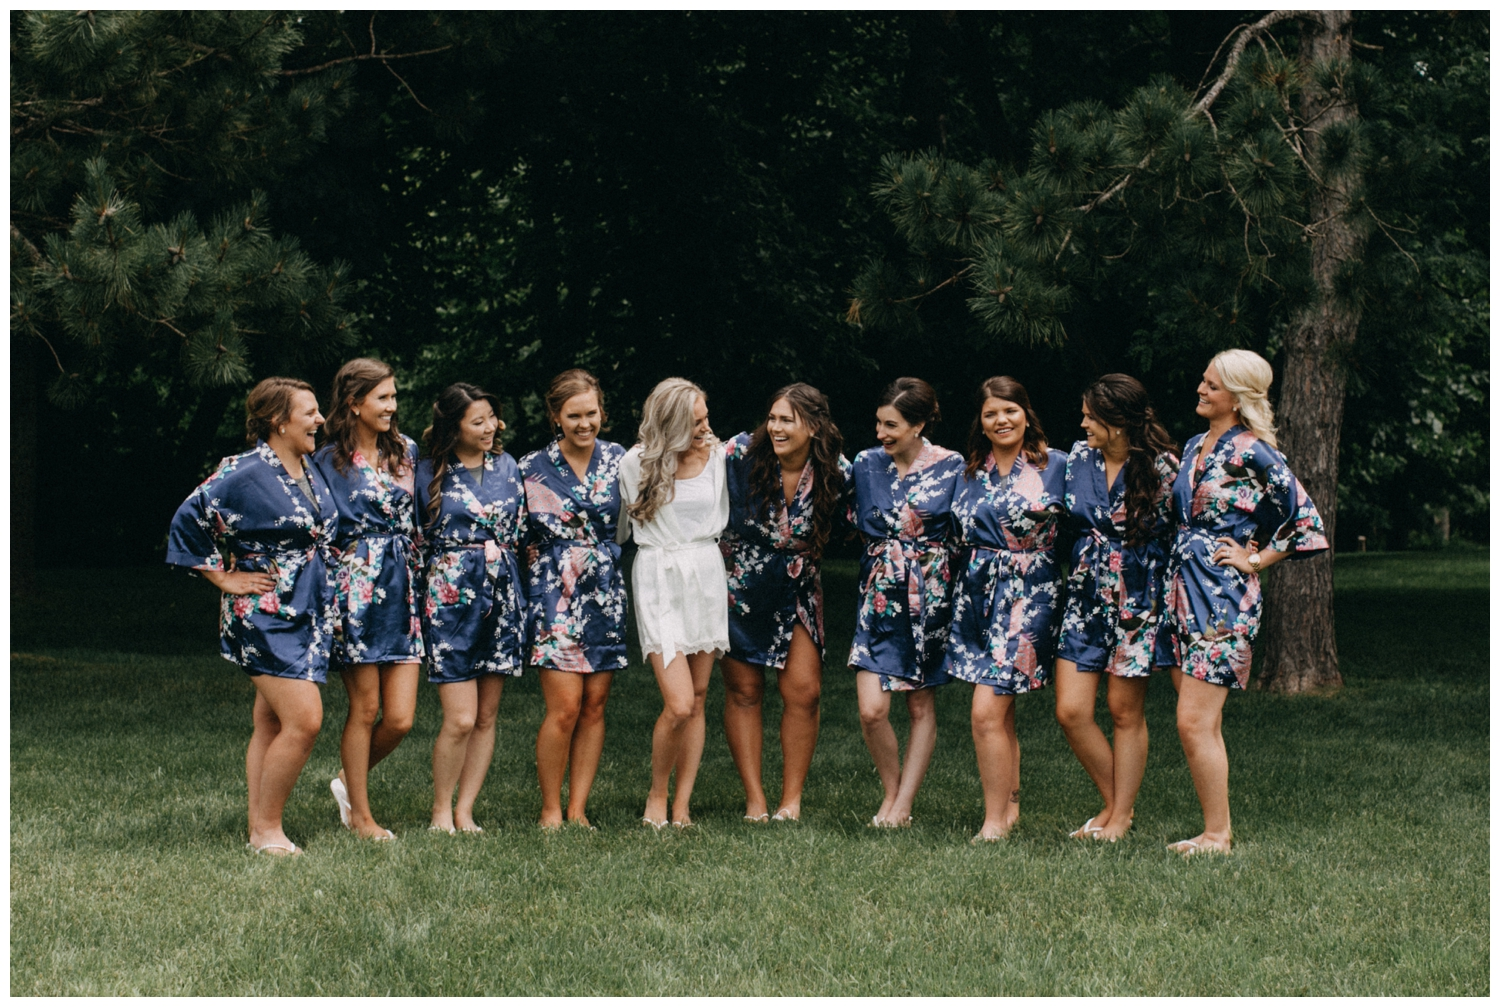 Bride poses with bridesmaids in blue floral robes at Creekside Farm wedding